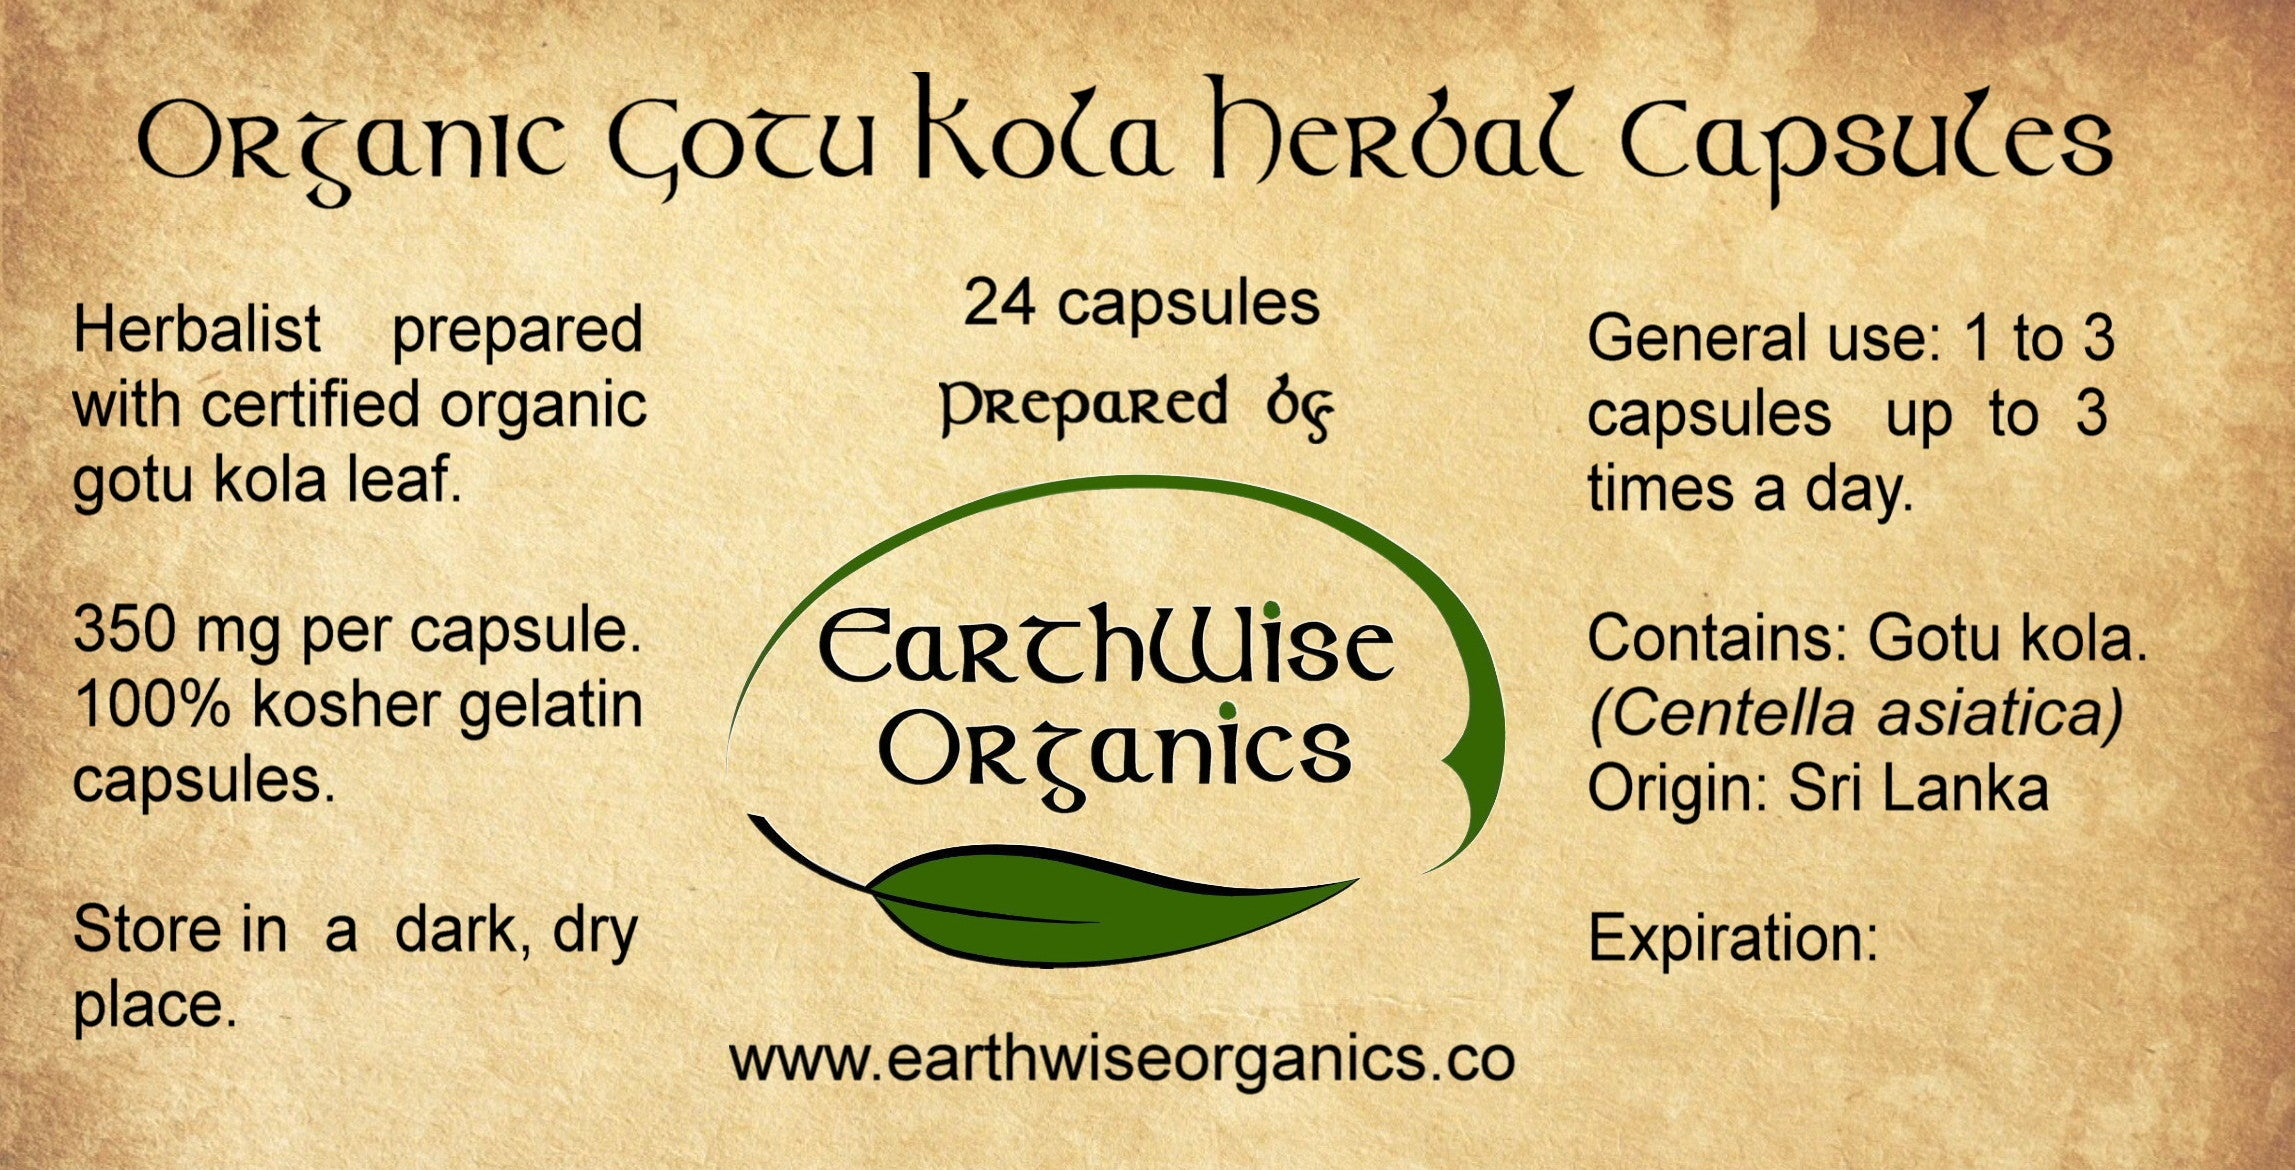 gotu kola organic herbal capsules label